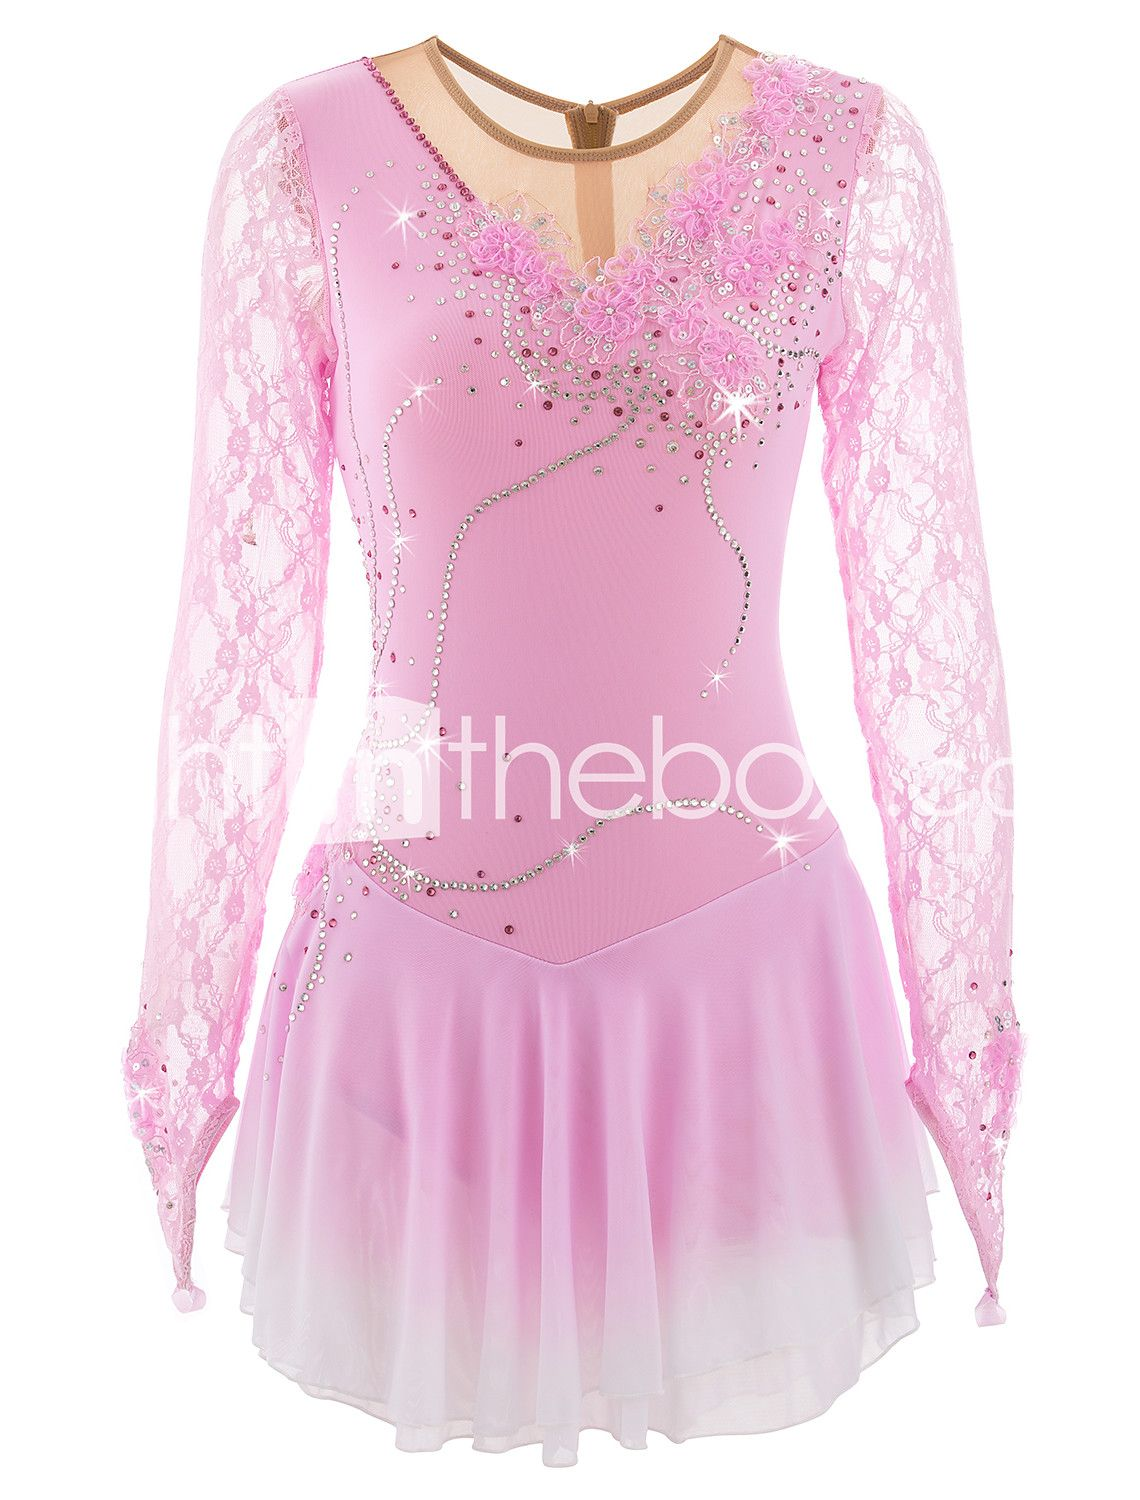 competition ice figure skating dress child  women ice skating dress blue dying